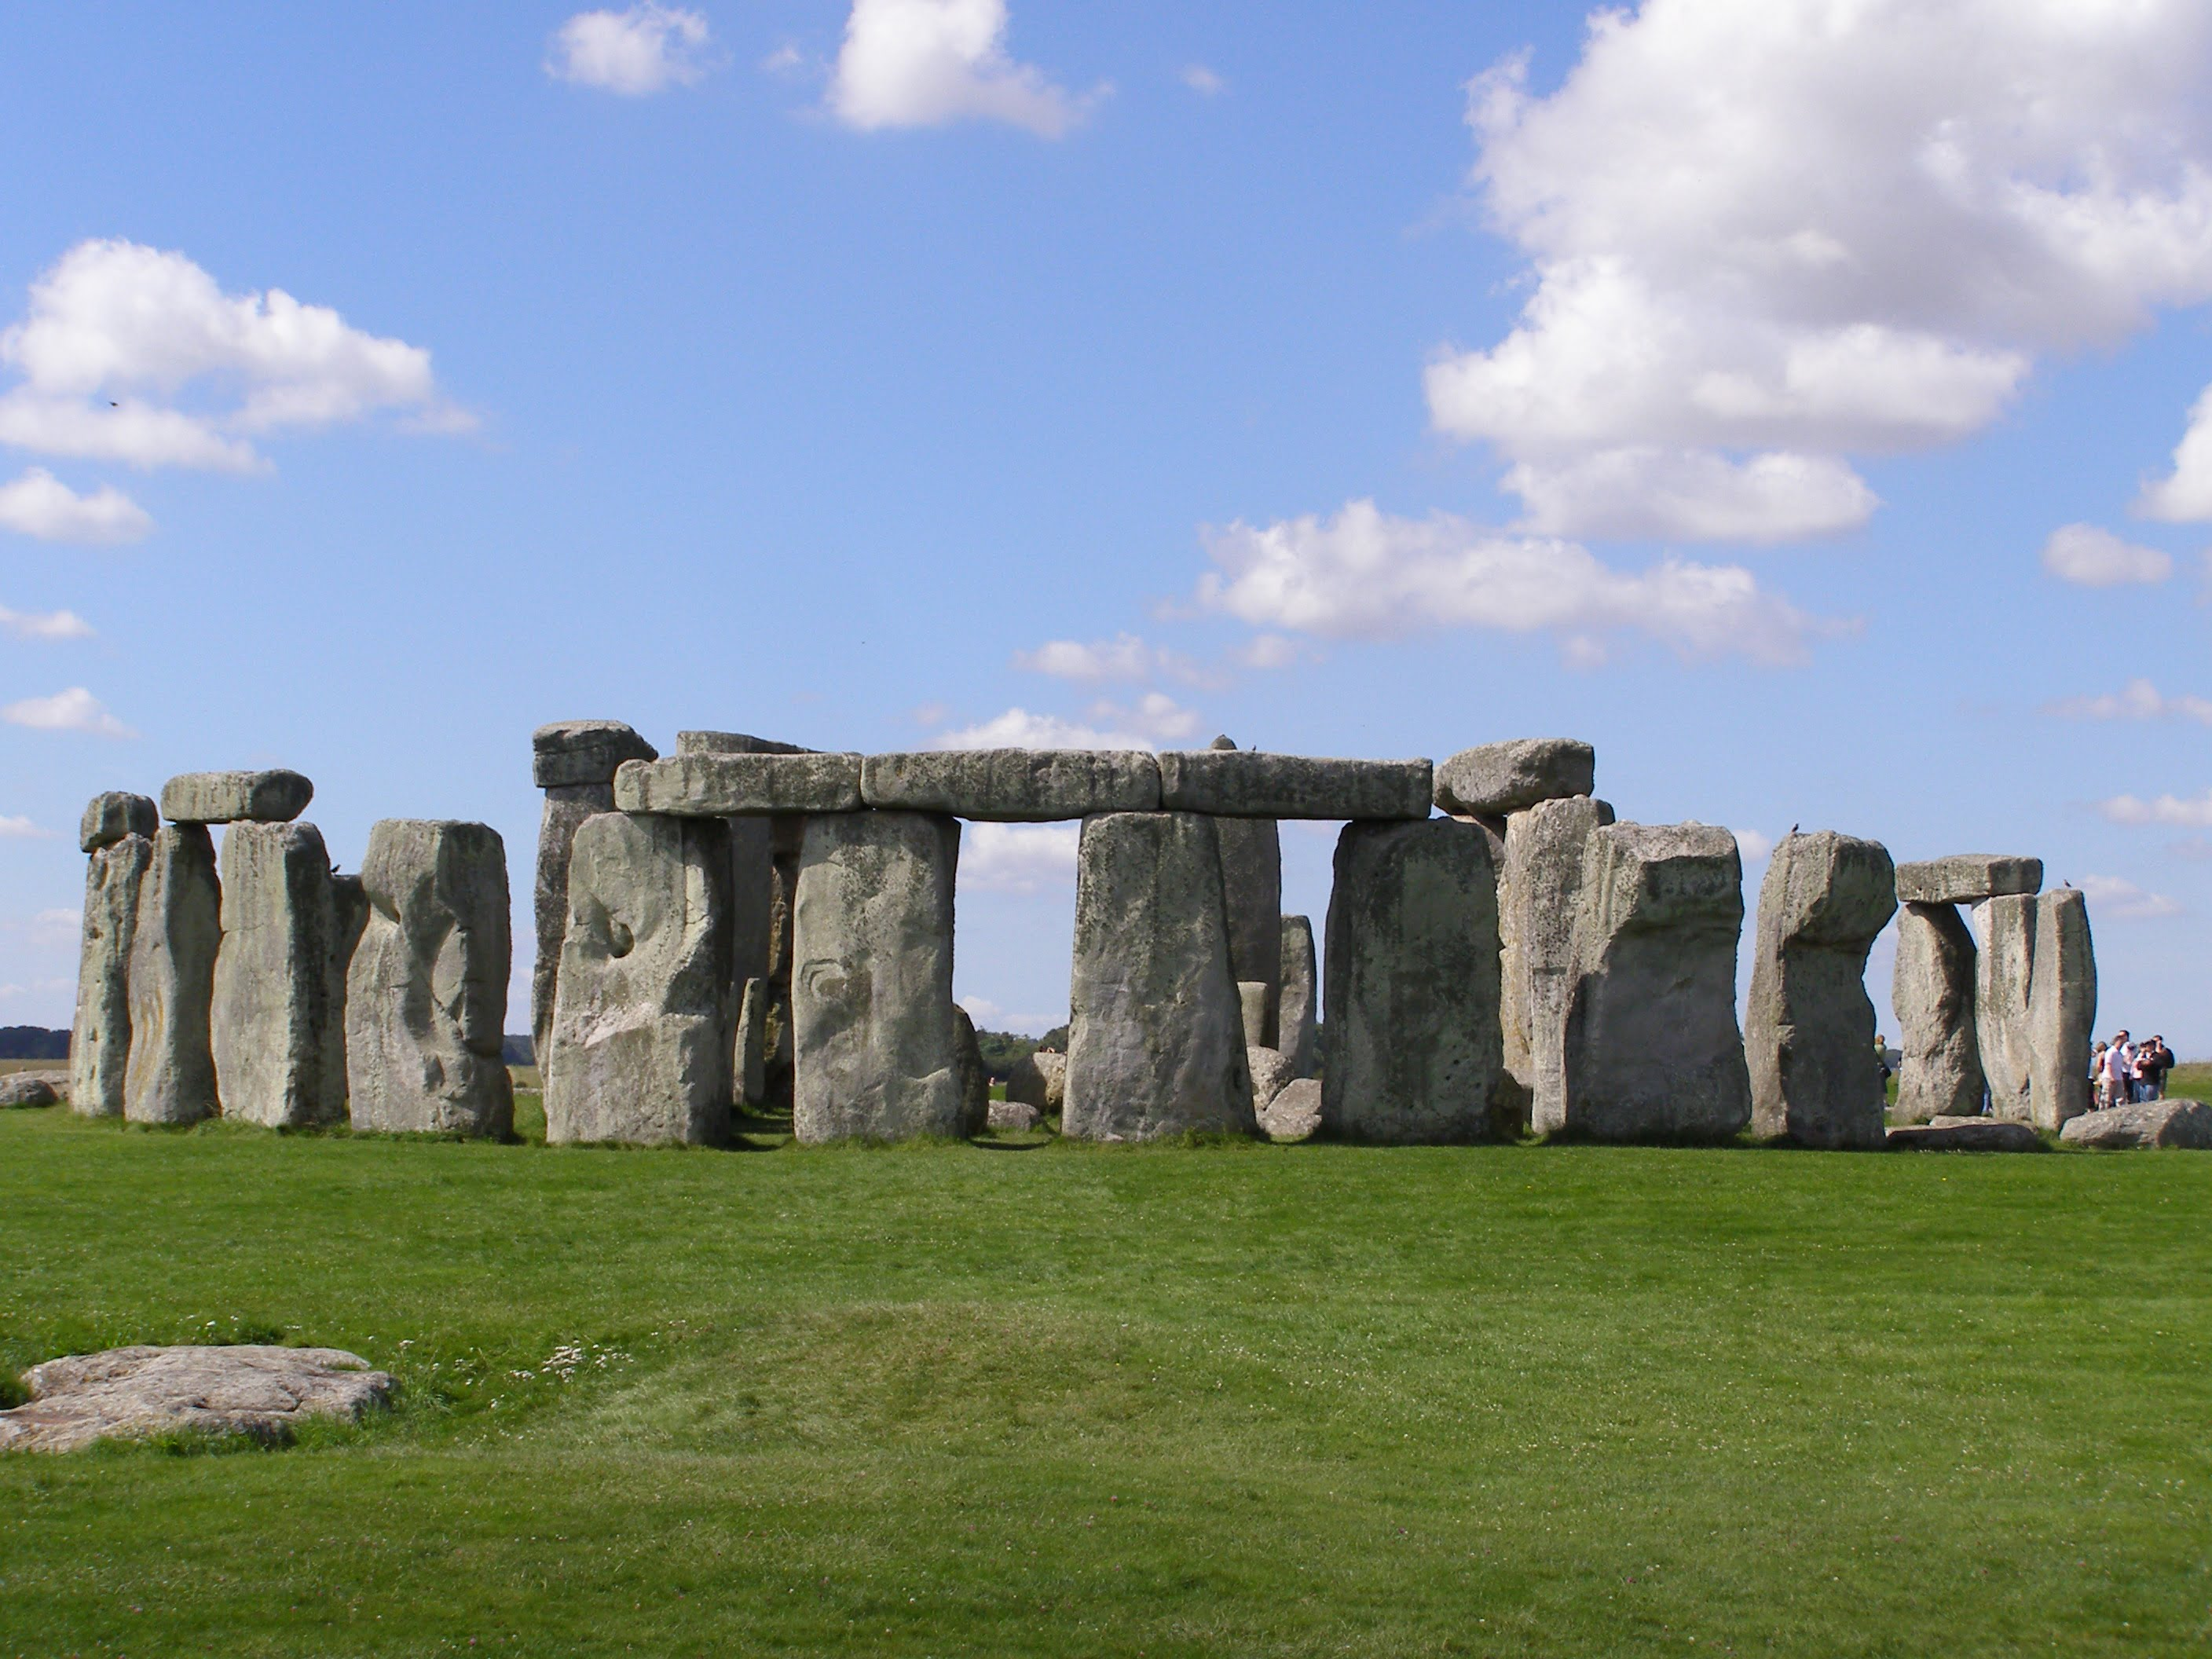 Stonehenge2007 07 30 - The Top Ten Strangest Places On Earth That Might Interest You